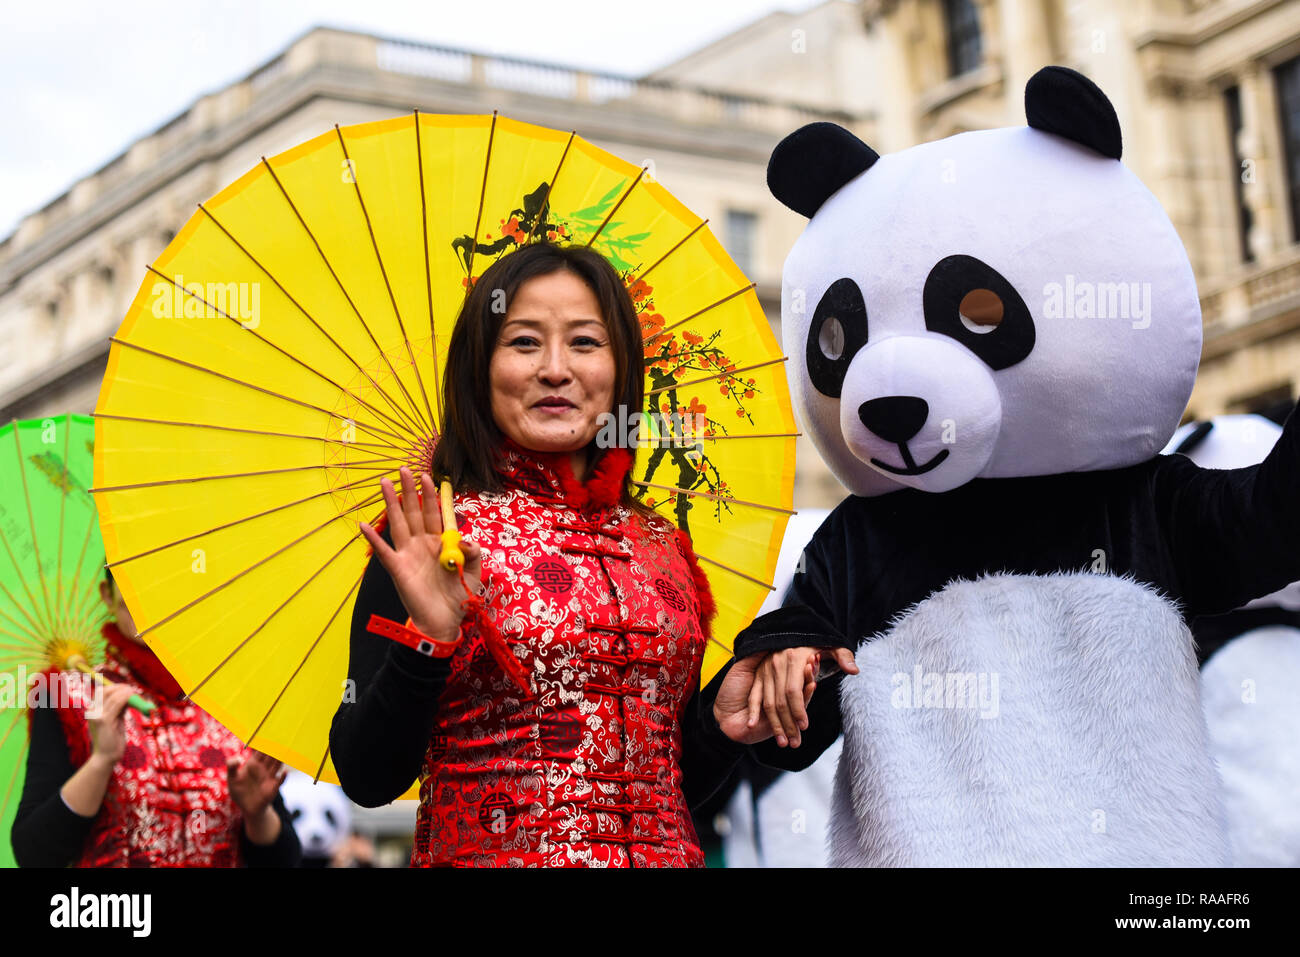 London Chinatown Chinois Association, Royaume-Uni, au London's New Year's Day Parade, au Royaume-Uni. Costume panda chinois et femelle Photo Stock